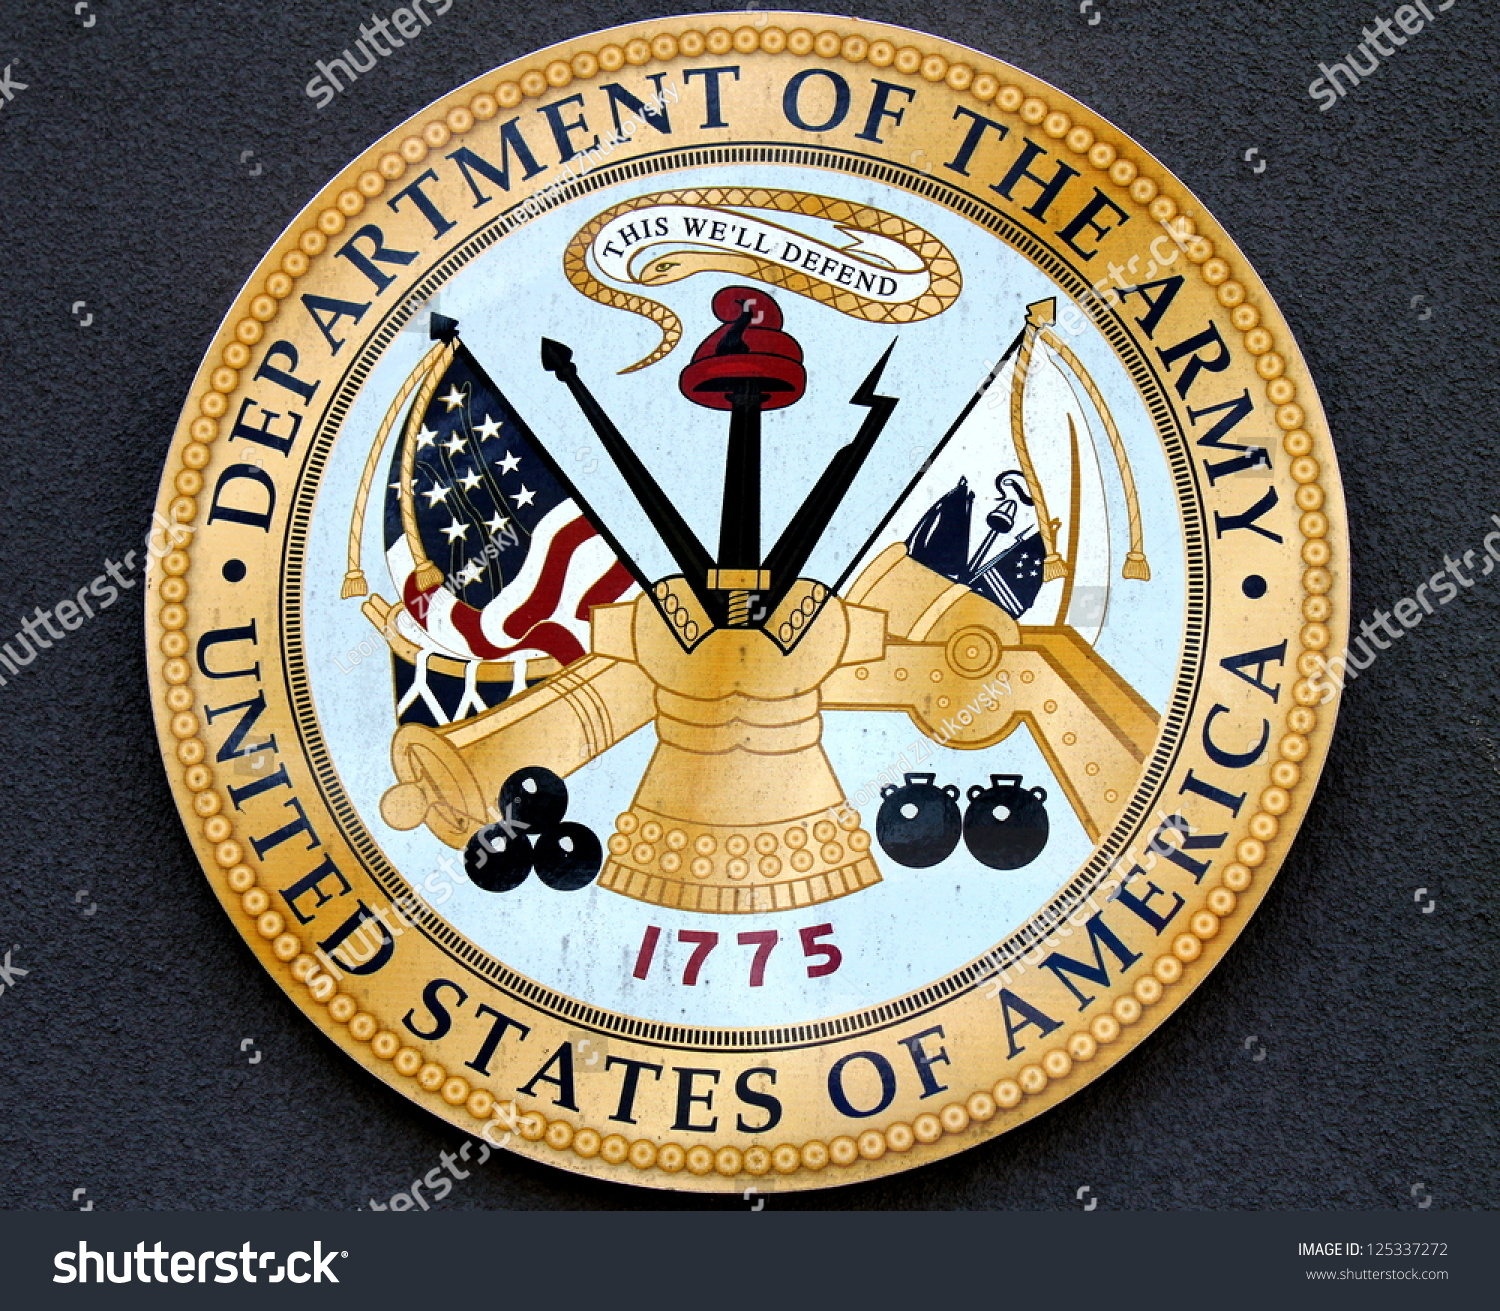 brooklyn new york may 17department army stock photo army logo pictures i can print indian army logo pictures